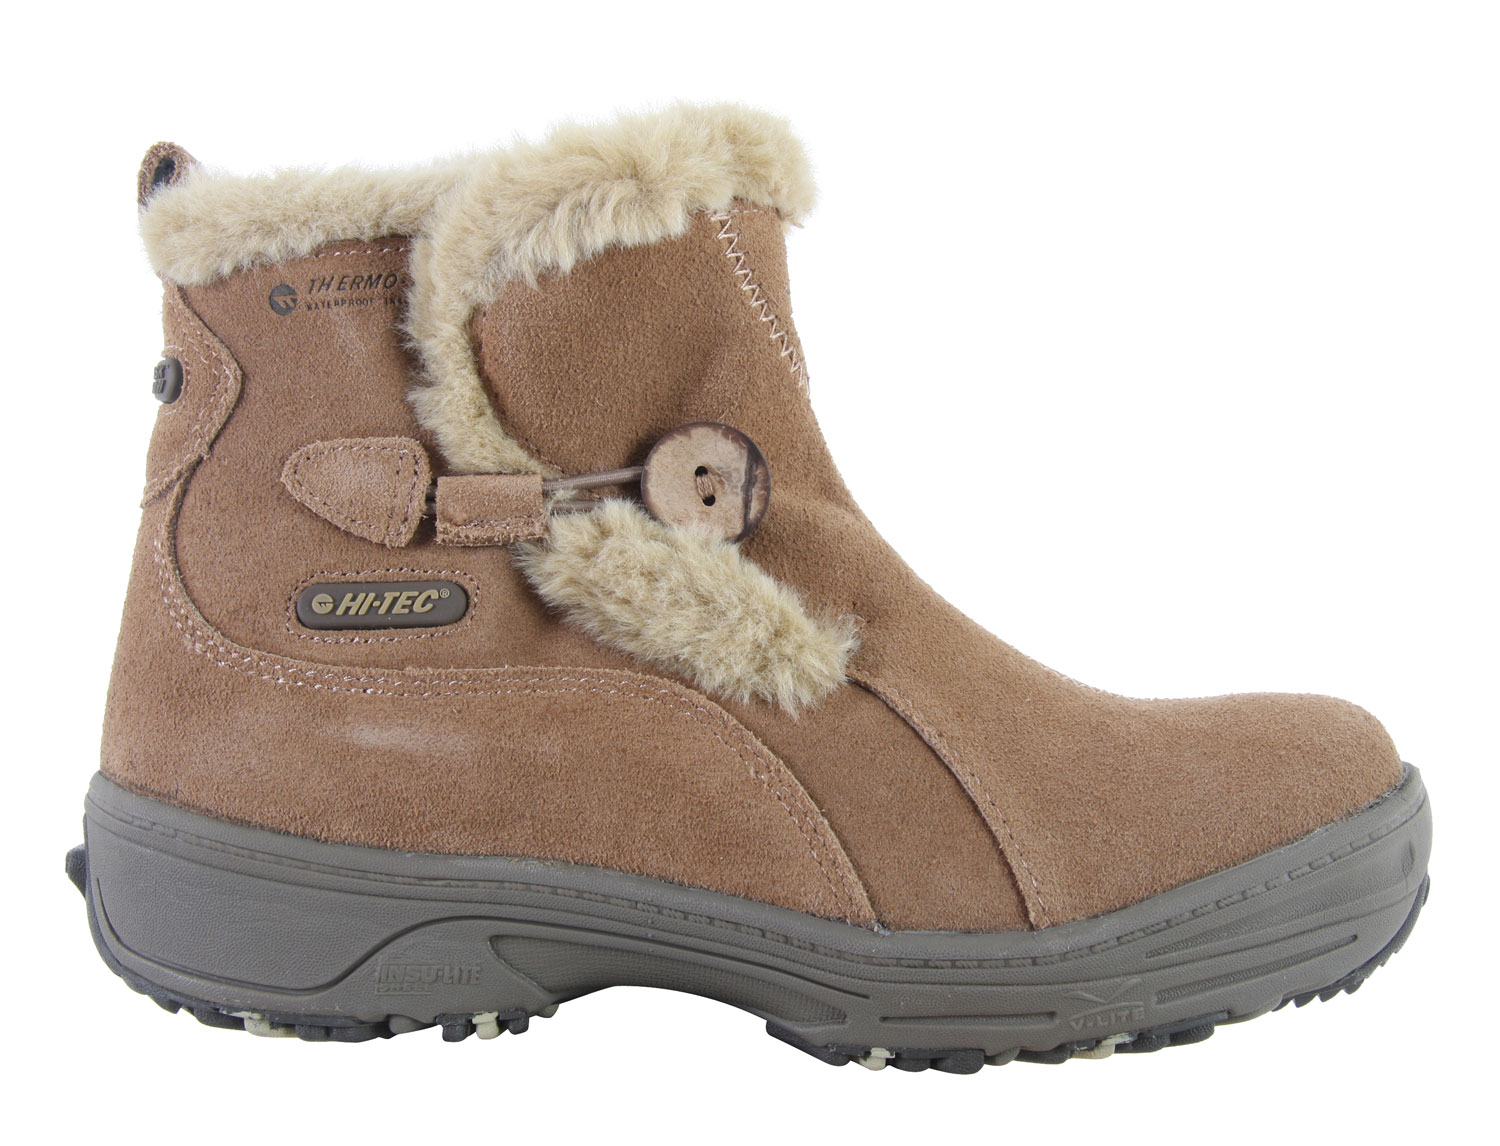 Be prepared when snow hits this winter with the Hitec V-Lite Snowflake Pull On 200 Casual Boots.  So durable, it can tough out in any weather, rain or snow.  Don't slip and fall when it's icy out because these boots' winter traction will prevent all that from happening.  Lined with faux fur, you'll feel extra warm and cozy.  These high quality suede and leather-made boots is the perfect gift to yourself this winter.  Don't miss out.Key Features of the Hitec V-Lite Snowflake Pull On 200 Casual Boots:  Wp Suede/Leather/Fabric Upper   Ion Mask Waterproof Tech   Thermo-Dri@ Waterproof And Insulated Systems   Faux Fur Lining   V-Lite Design And Build   Insu-Lite Shell Tech.   Faux Fur Lining   Tpu Support Shank   Pull On Construction   Stretch, Pull On Boot Design/Construction   Comfort Tec Contoured Sock Liner   Winter Siping Outsole Pads For Winter Traction   Tpu Support Shank   Winter Siping Outsole Pads For Winter Traction - $65.95